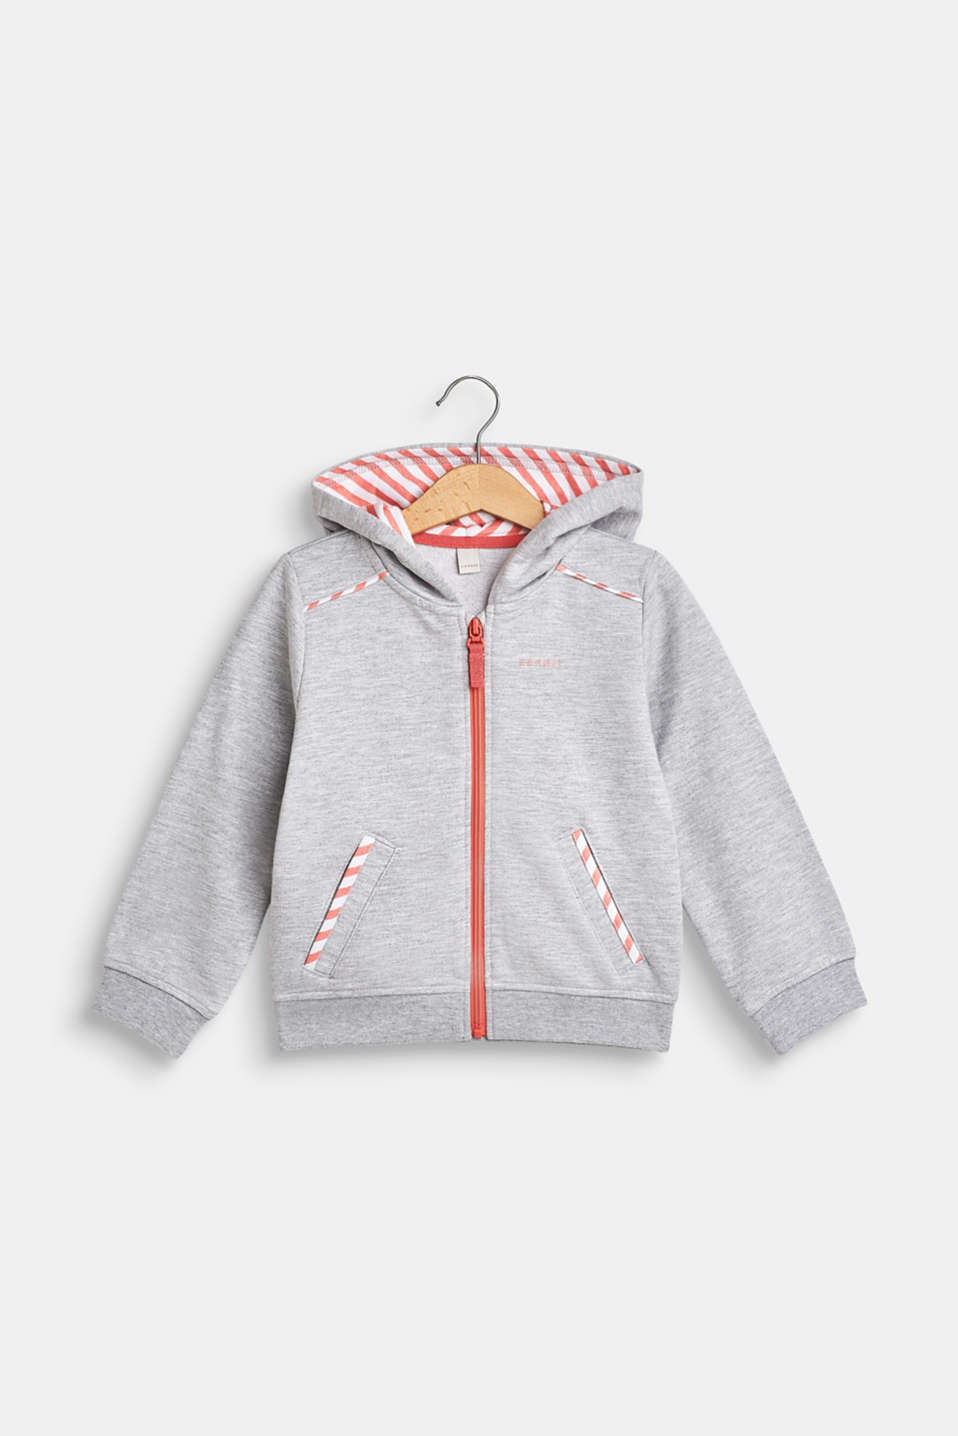 Esprit - Sweatshirt cardigan with a hood and striped details